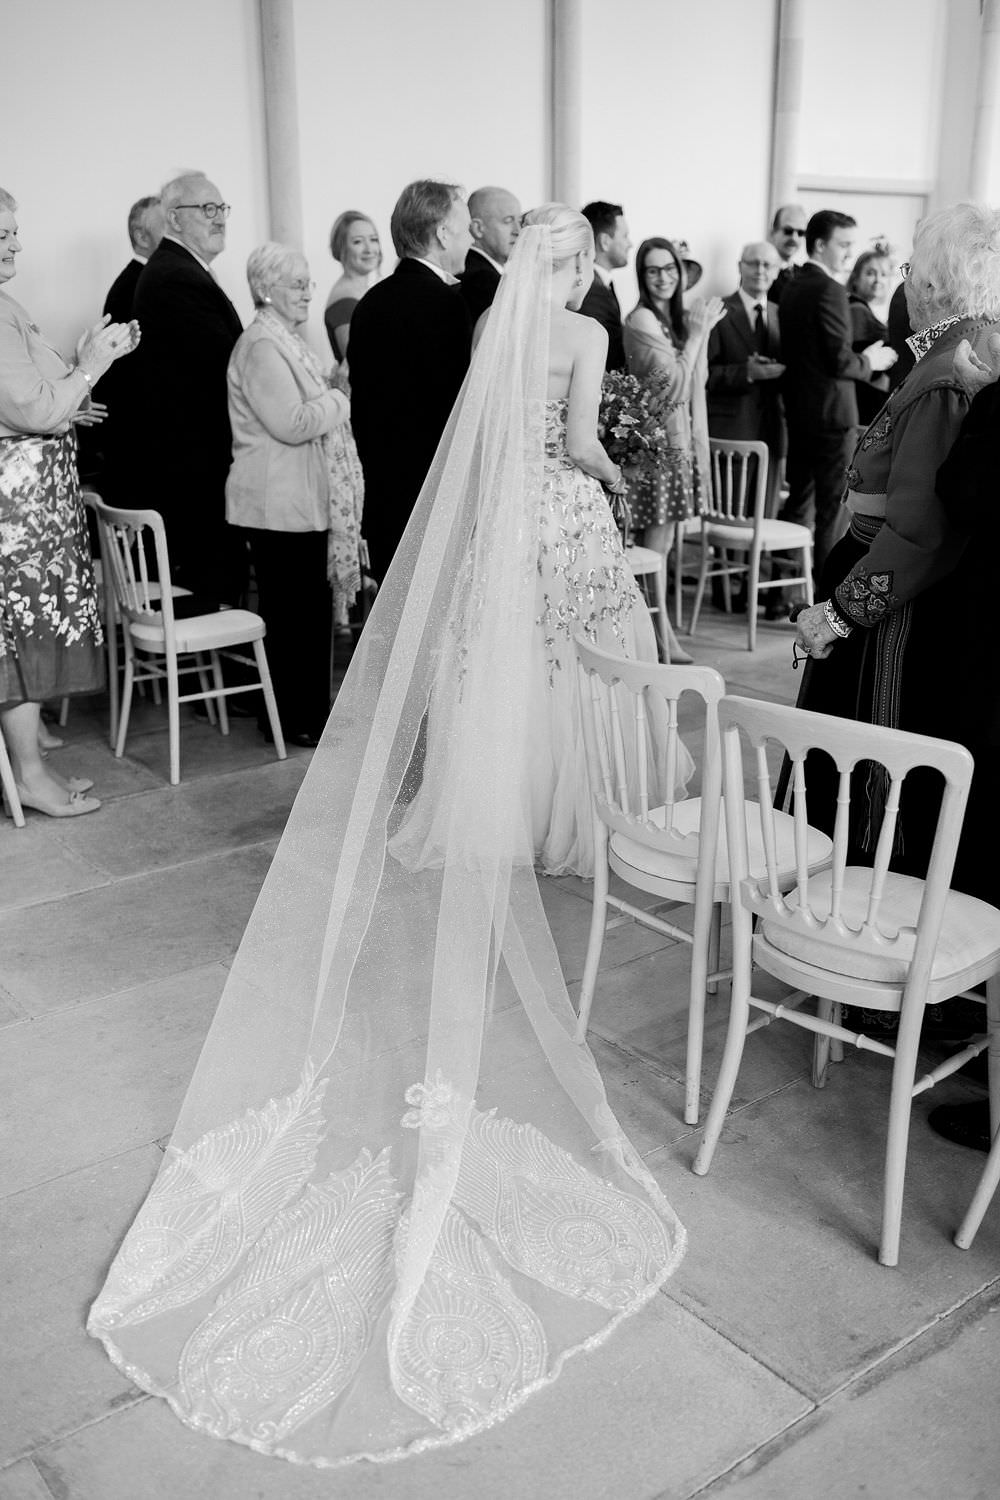 Glitter Embellished Detailed Long Veil Bride Bridal Highcliffe Castle Wedding Bowtie and Belle Photography